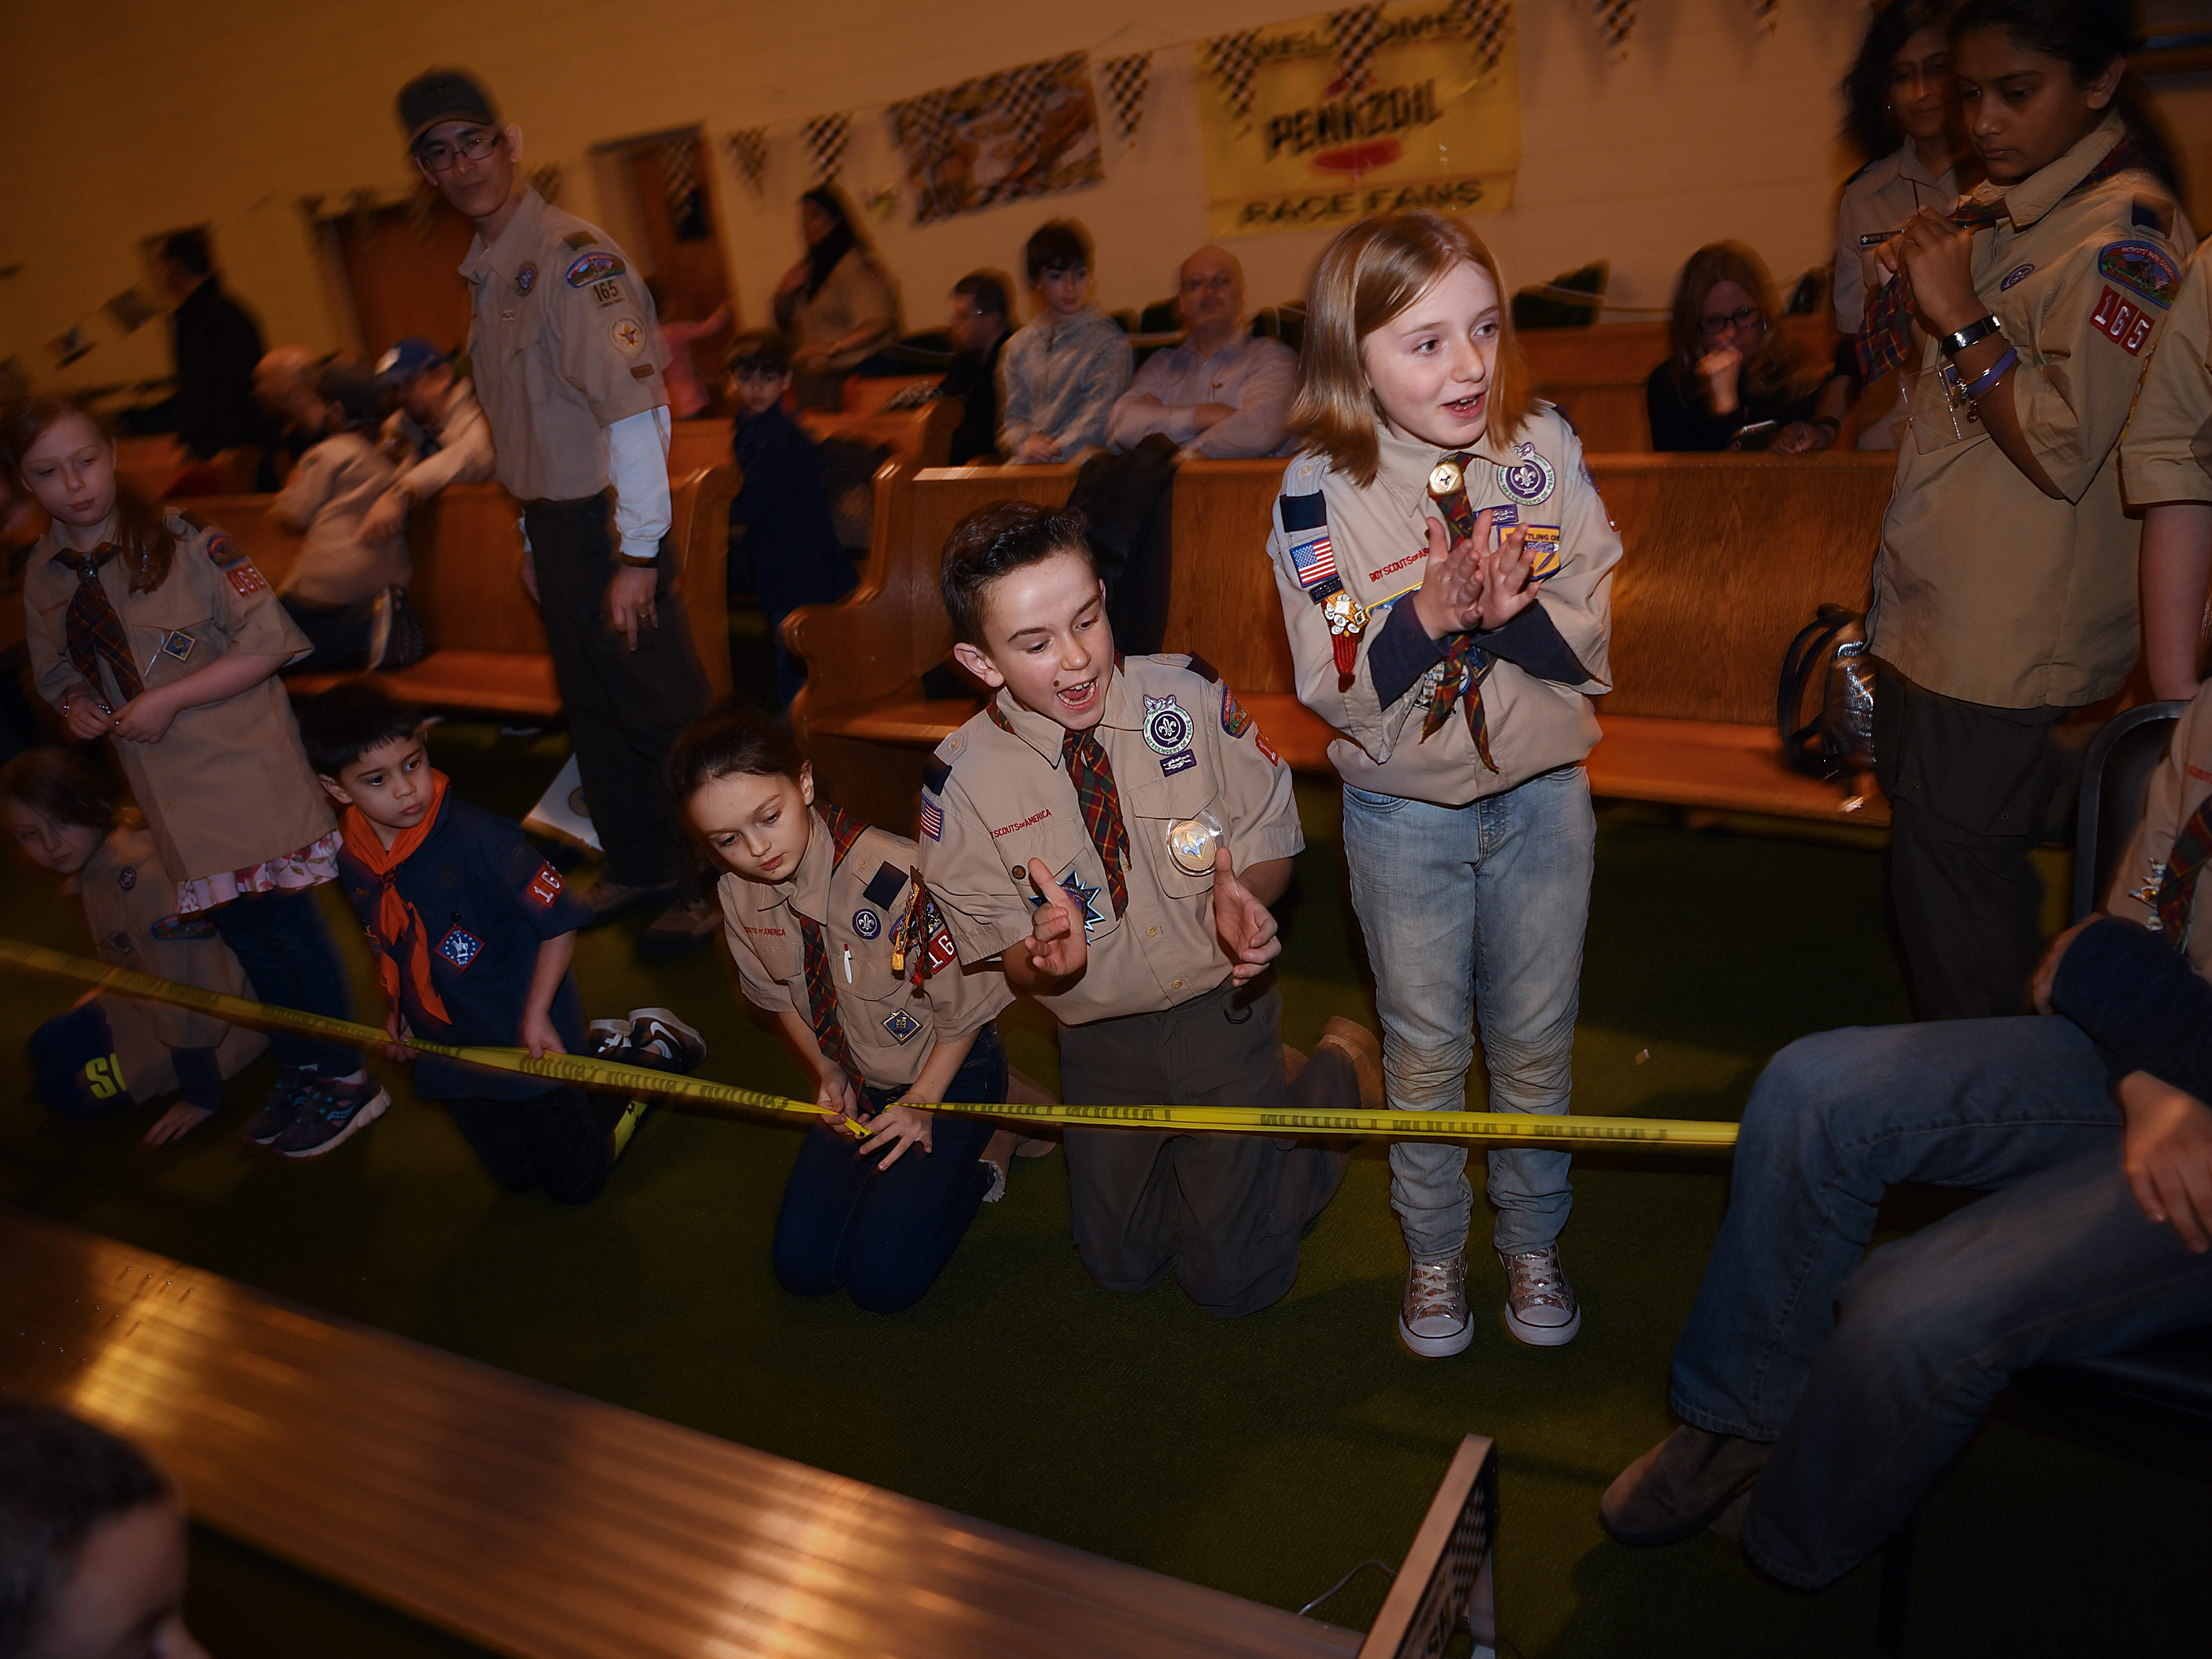 The Morris County Pinewood Derby at Holy Trinity Lutheran Church in Rockaway on Friday January 18, 2019. (Standing, right) Madison Sipple, 10 years old with Cub Scout pack 165 Arrow of Light den, claps as the cars race to the finish line.